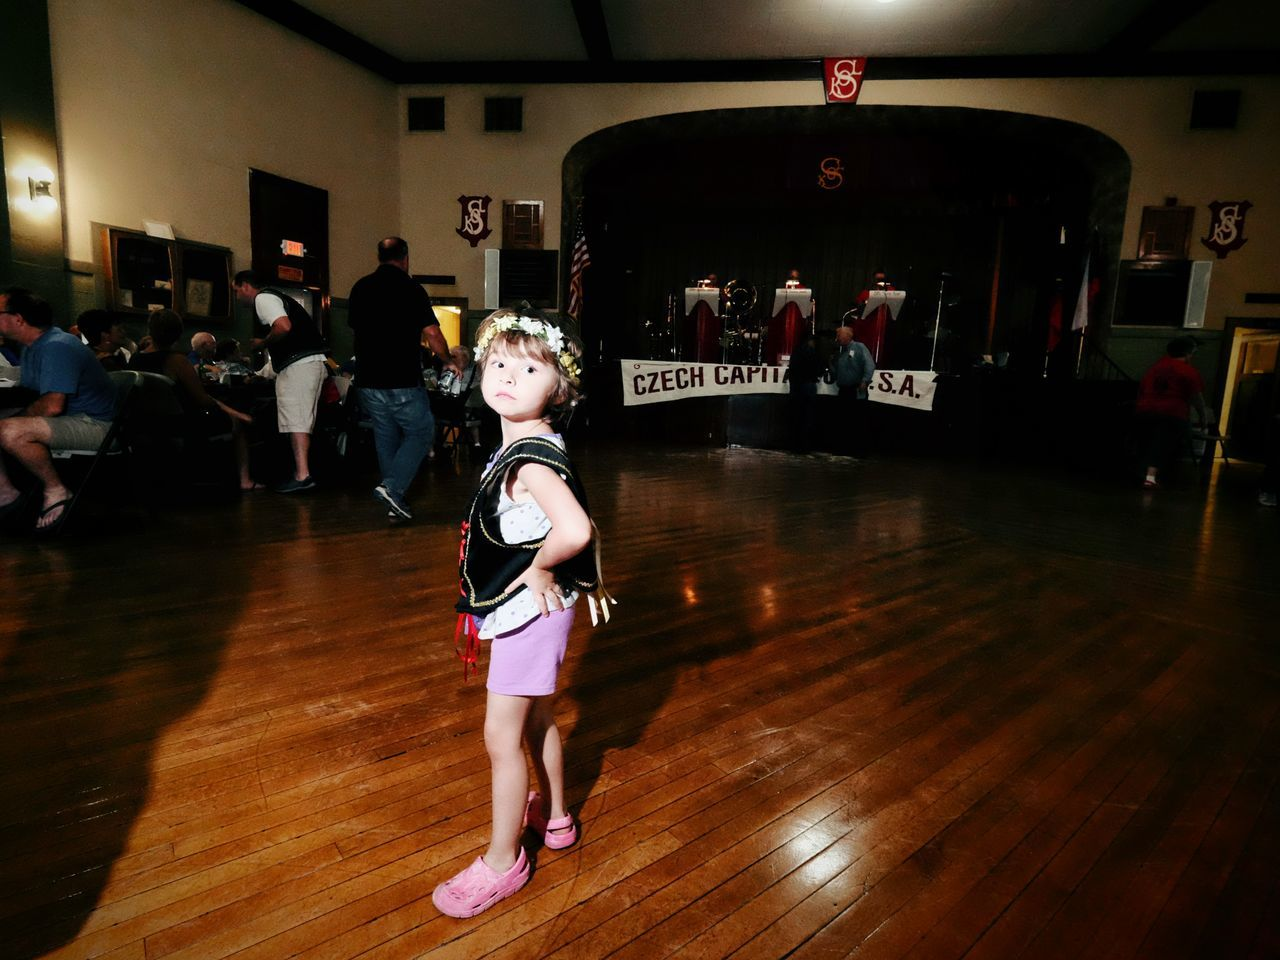 55th Annual National Czech Festival August 5, 2016 Wilber, Nebraska A Day In The Life Americans Ballroom Celebration Czech Days Czech Festival Dance Dancing Enjoyment Entertainment Flash Photography Fun Leisure Activity Lifestyles Nebraska Photo Essay Polka Real People Small Town America Small Town USA SOKOL Storytelling Traditional Traditional Culture Wilber, Nebraska